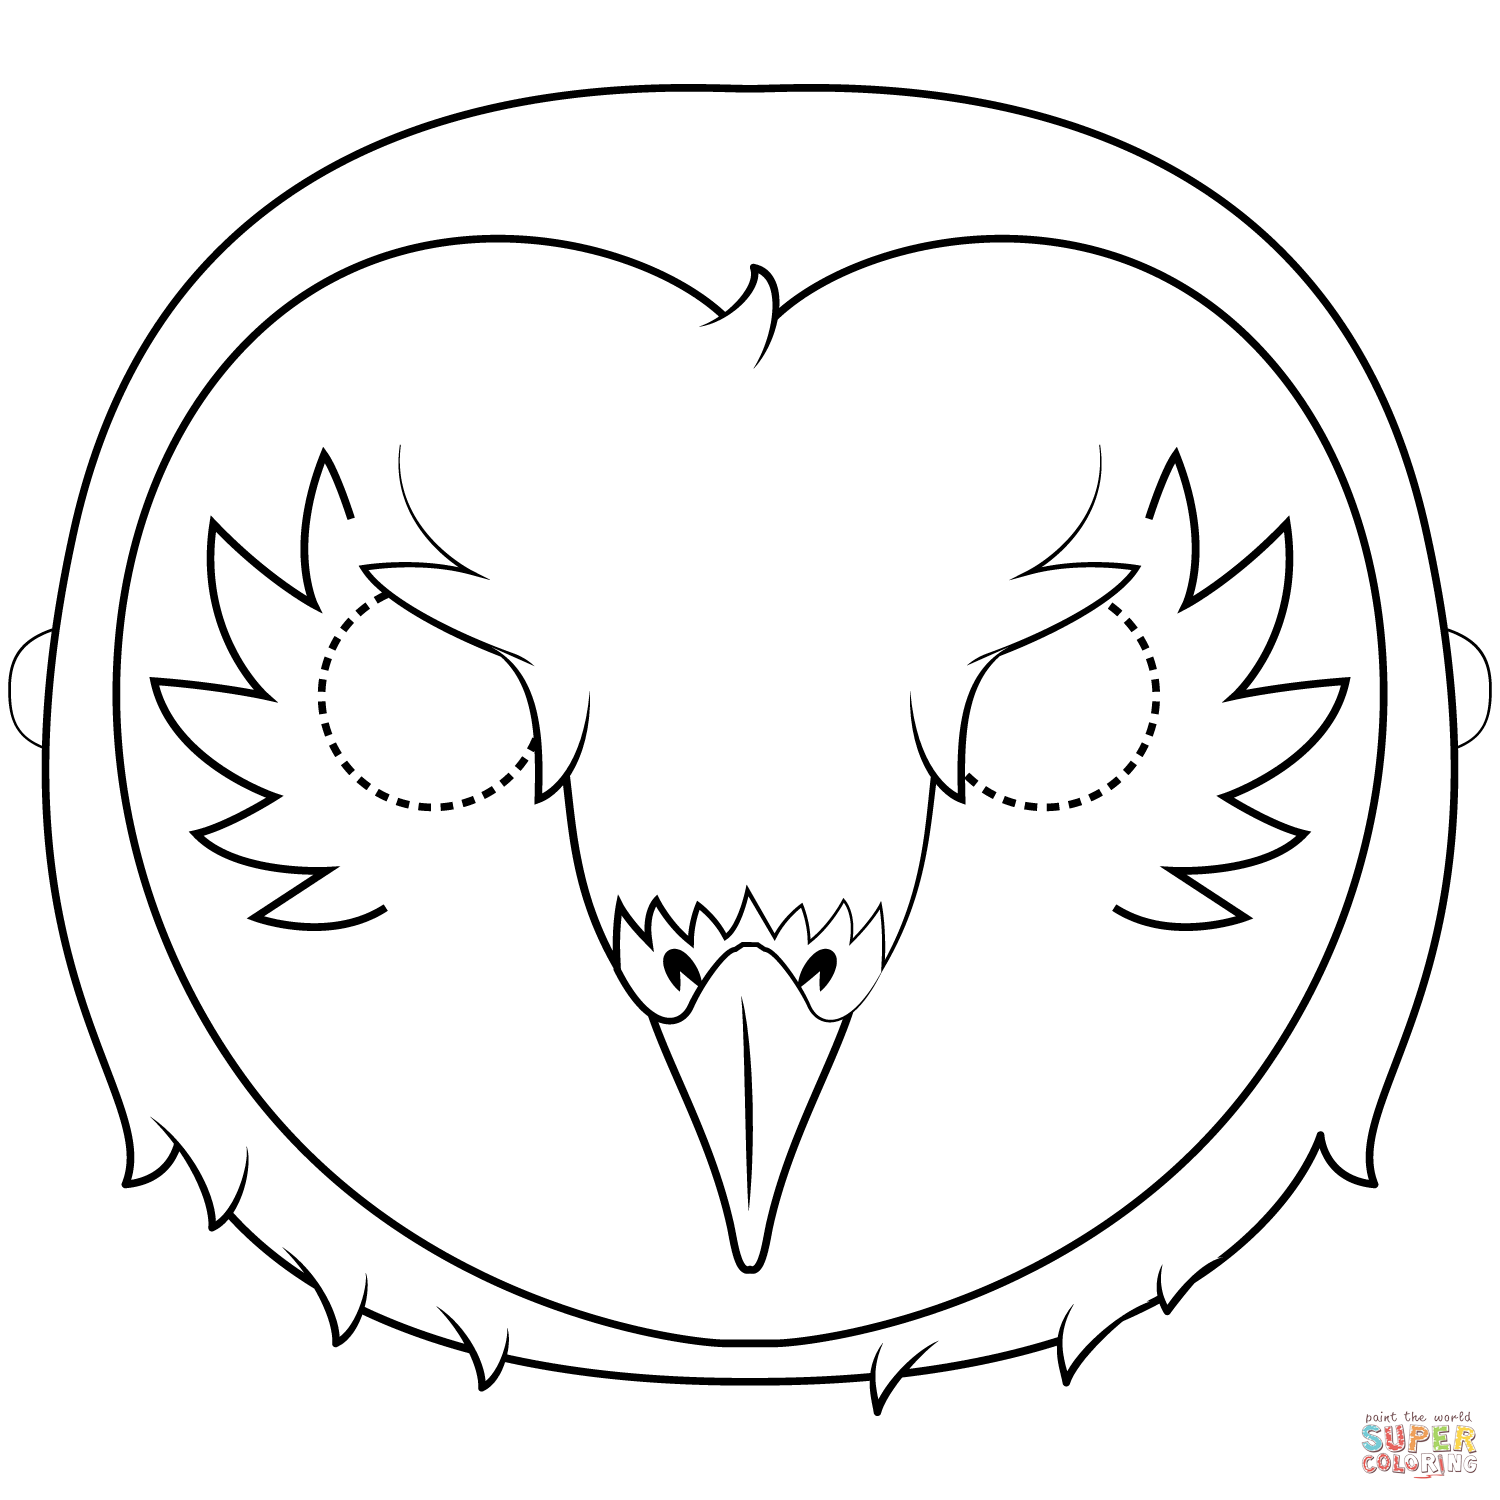 Barn Owl Mask Coloring Page Free Printable Coloring Pages